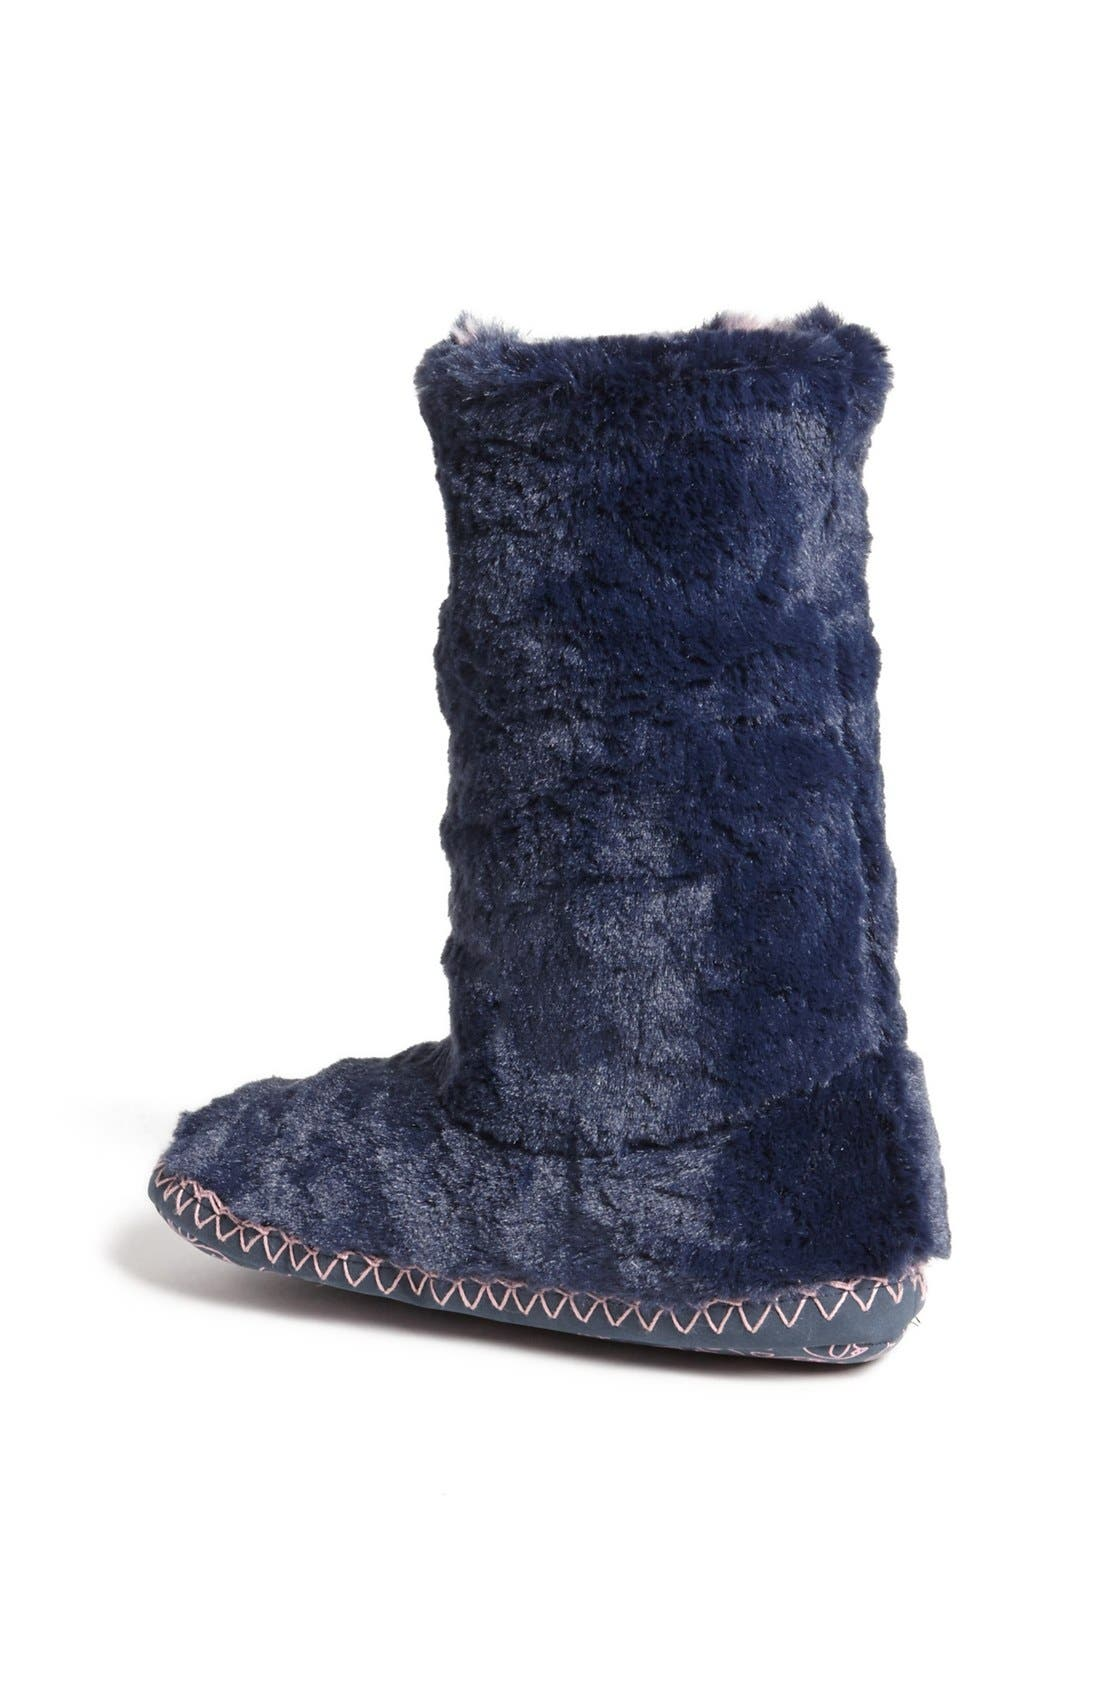 Alternate Image 3  - Bedroom Athletics 'Sophia' Faux Fur Bootie Slipper